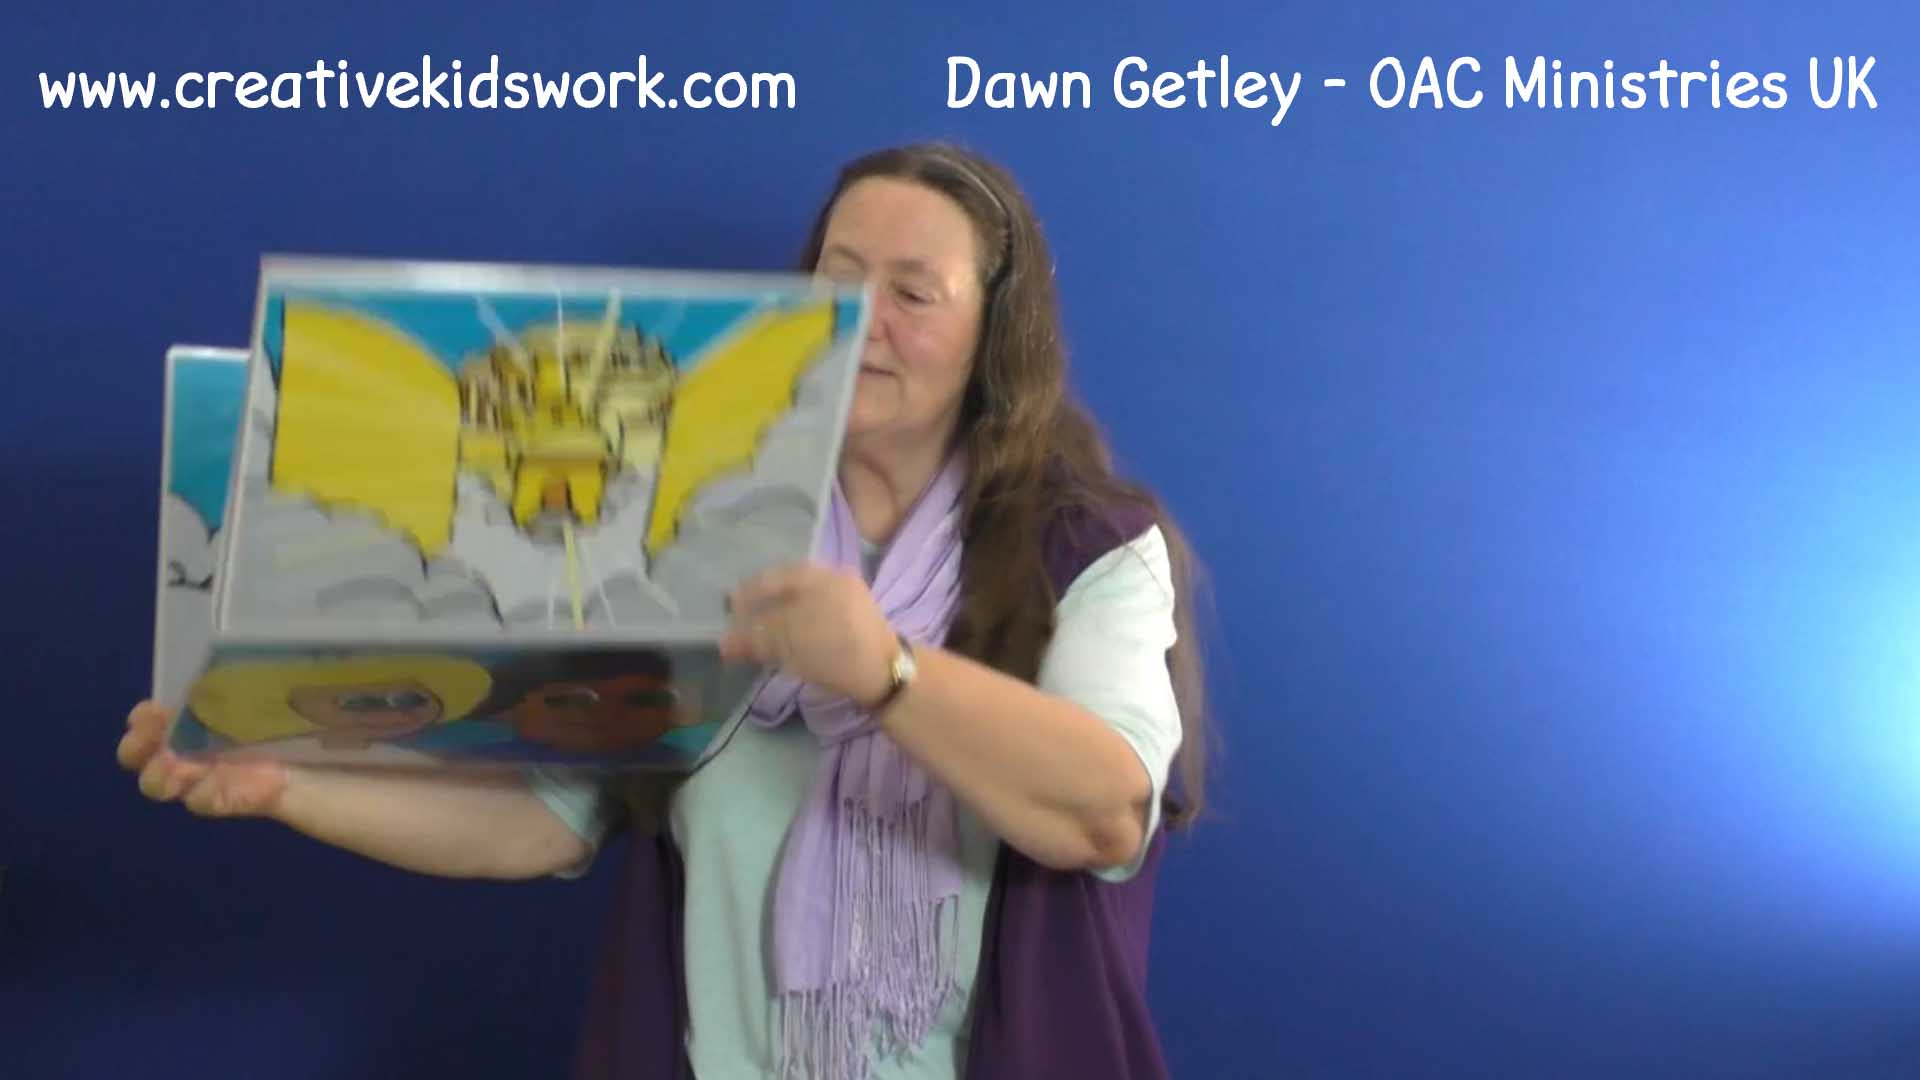 Dawn Getley tells the story of Noah and the ark